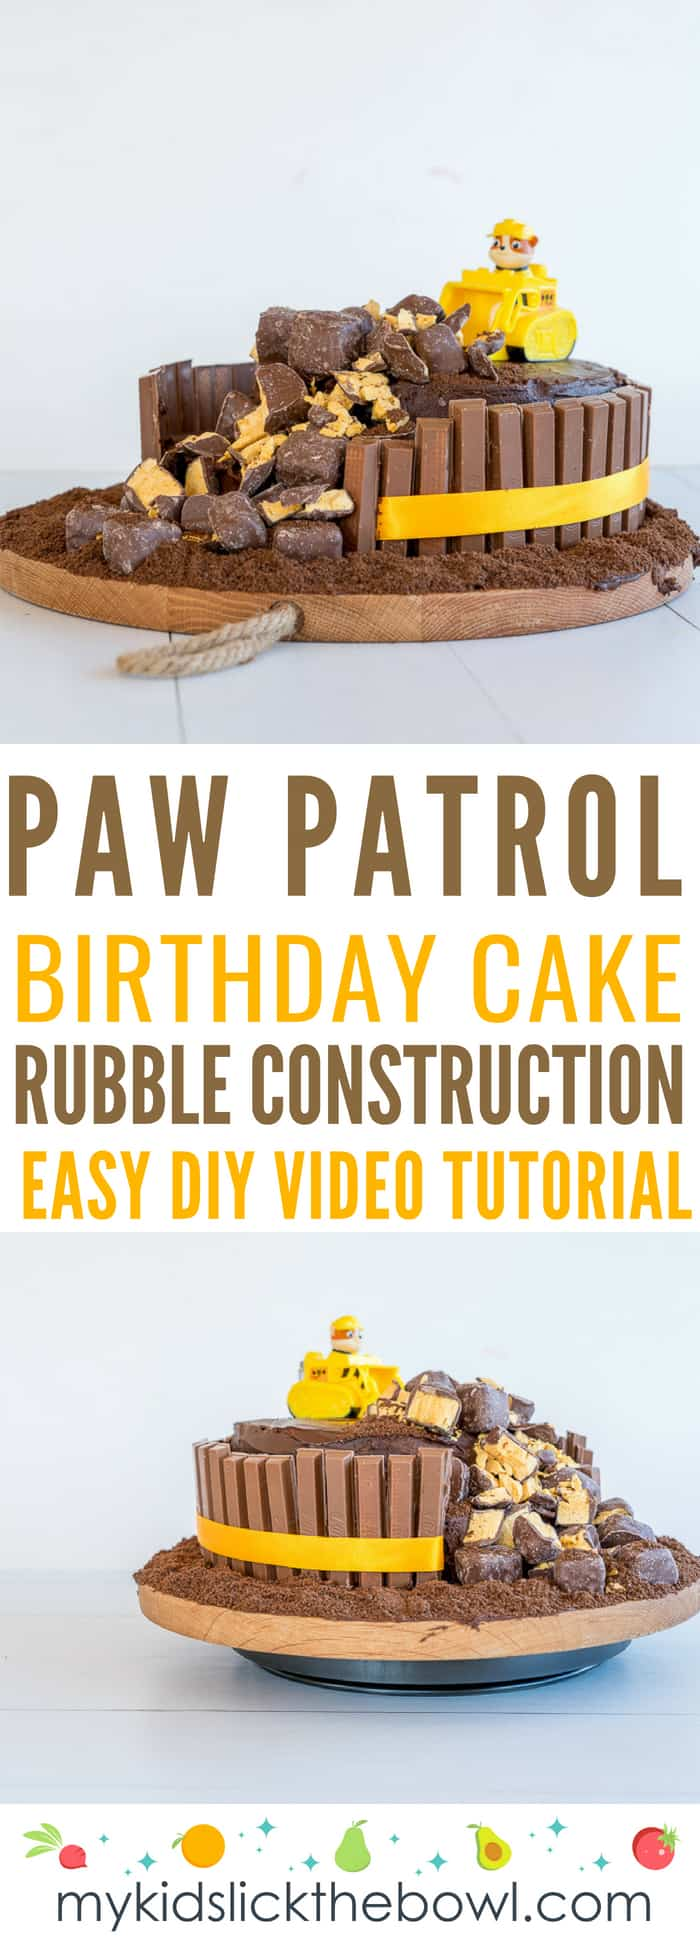 Chocolate Paw Patrol Construction Cake Featuring Rubble